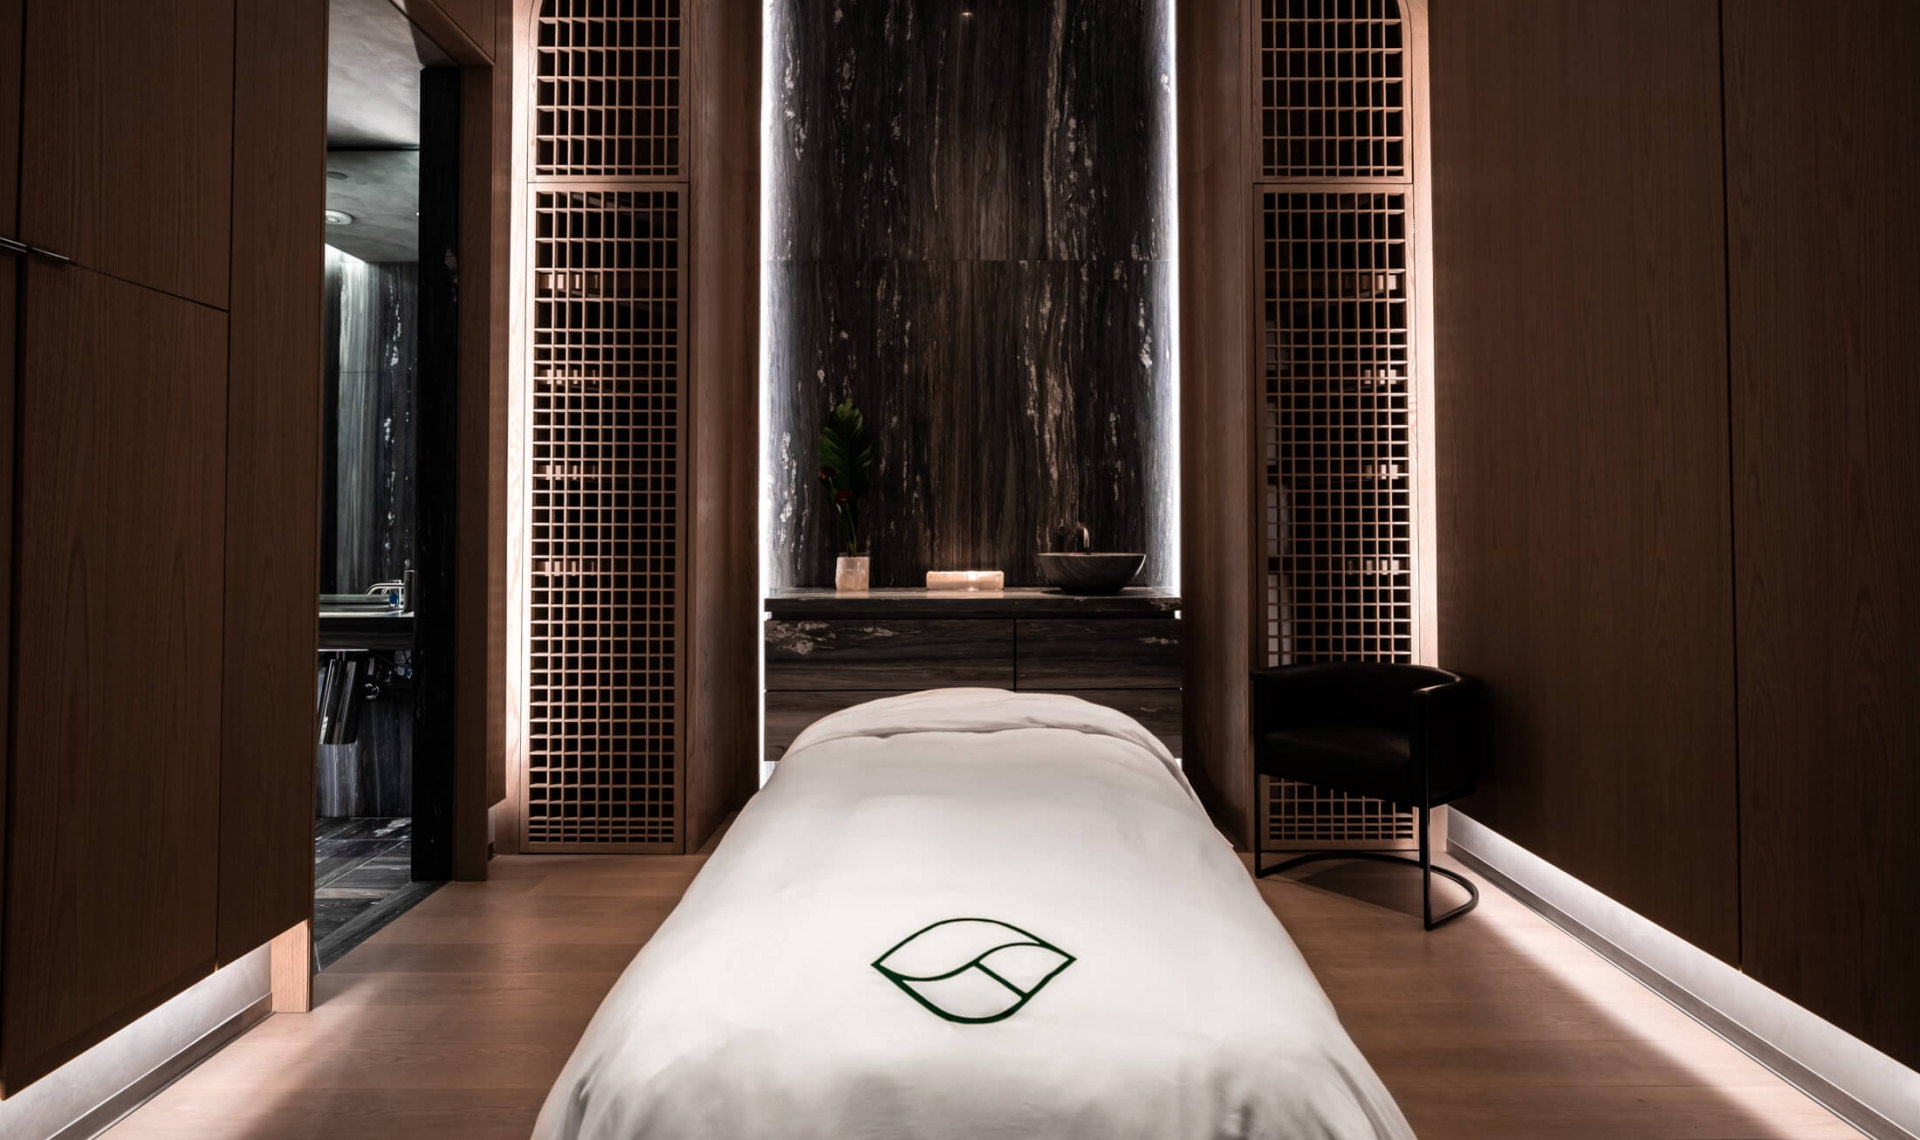 Interior view of a massage table in a private room at Fairmont Century Plaza's luxury spa.